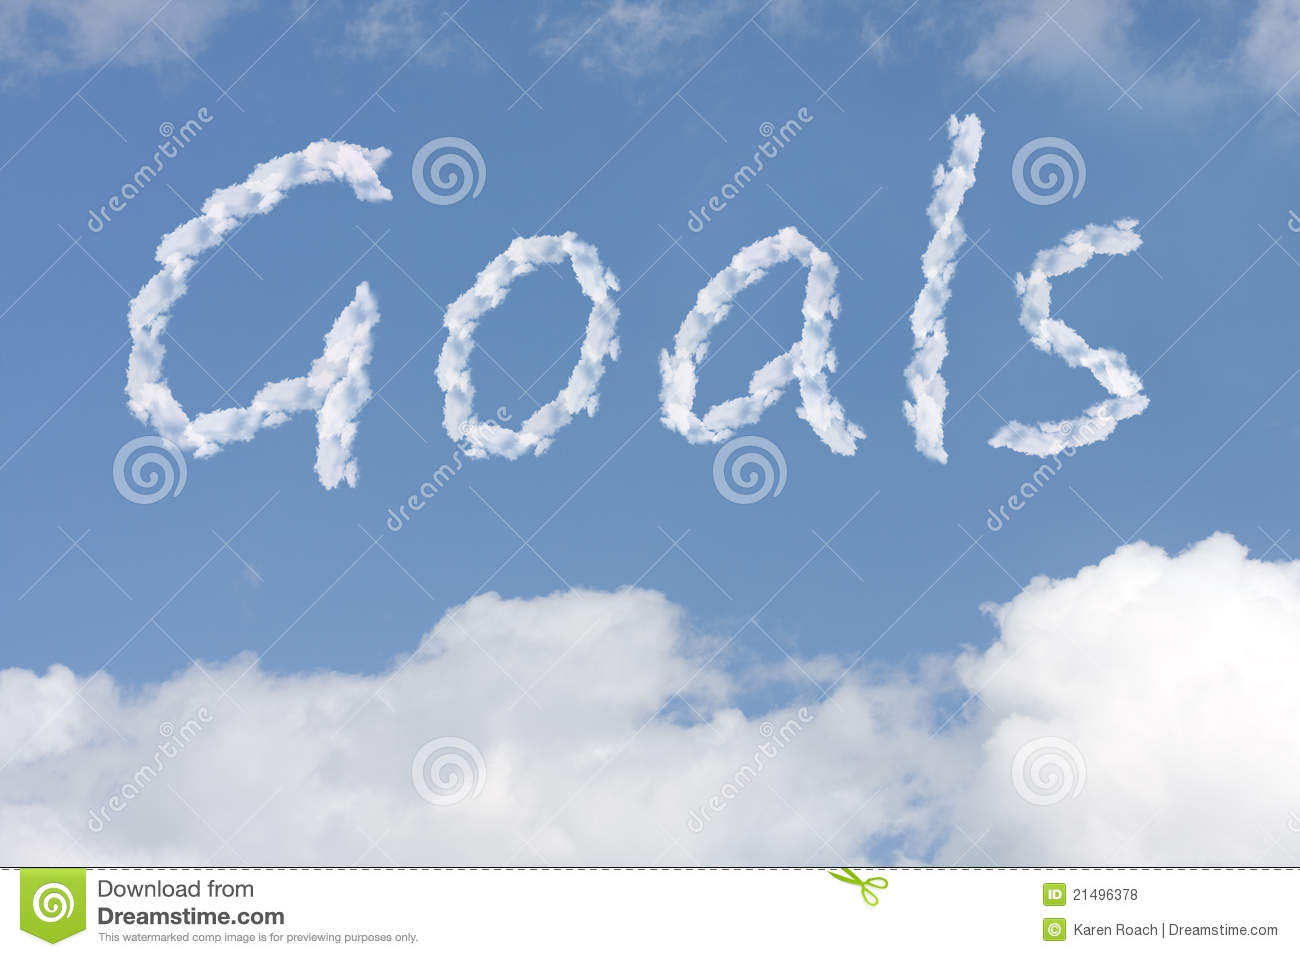 reaching your dreams essay What if everyone tried in life to reach their personal goals if everyone set goals in their life and pursued them and never gave up until they reached them.